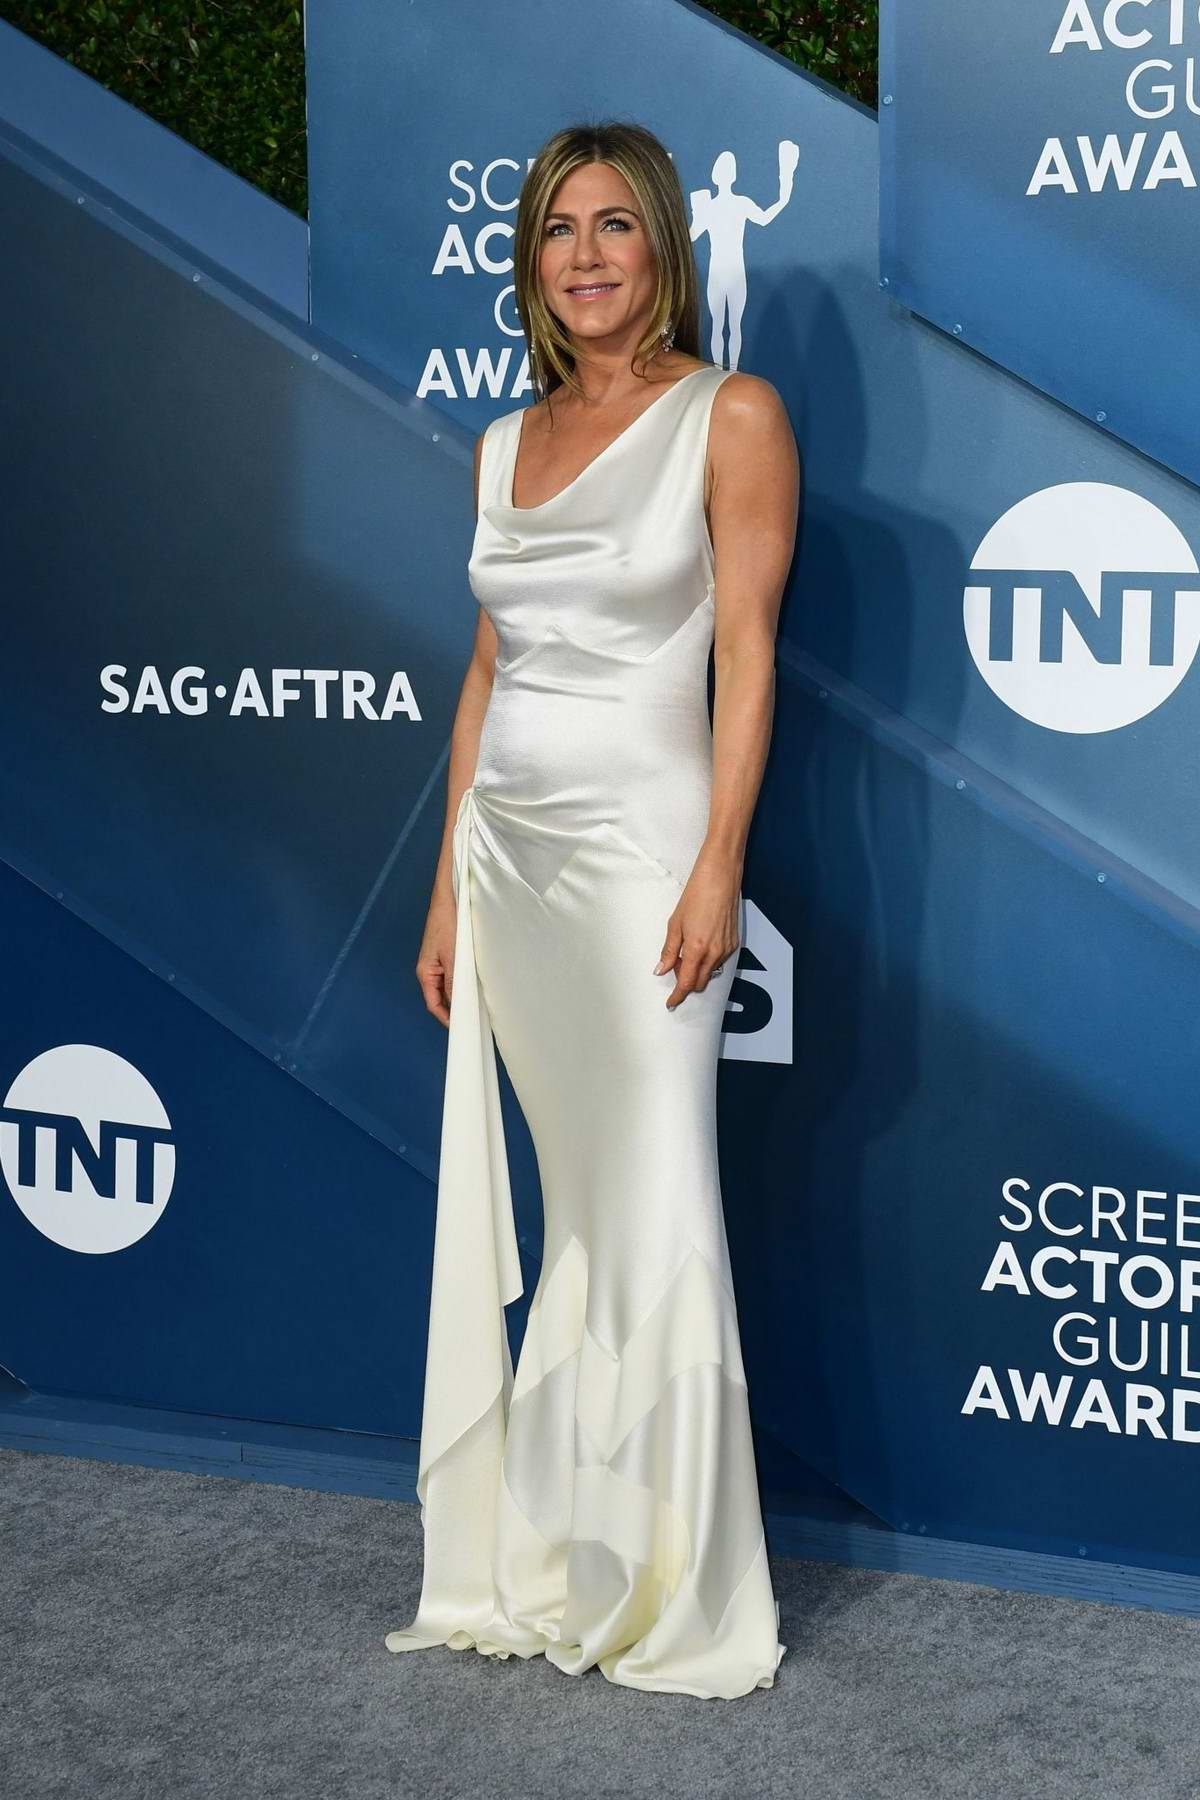 Jennifer Aniston attends the 26th Annual Screen Actors Guild Awards at the Shrine Auditorium in Los Angeles